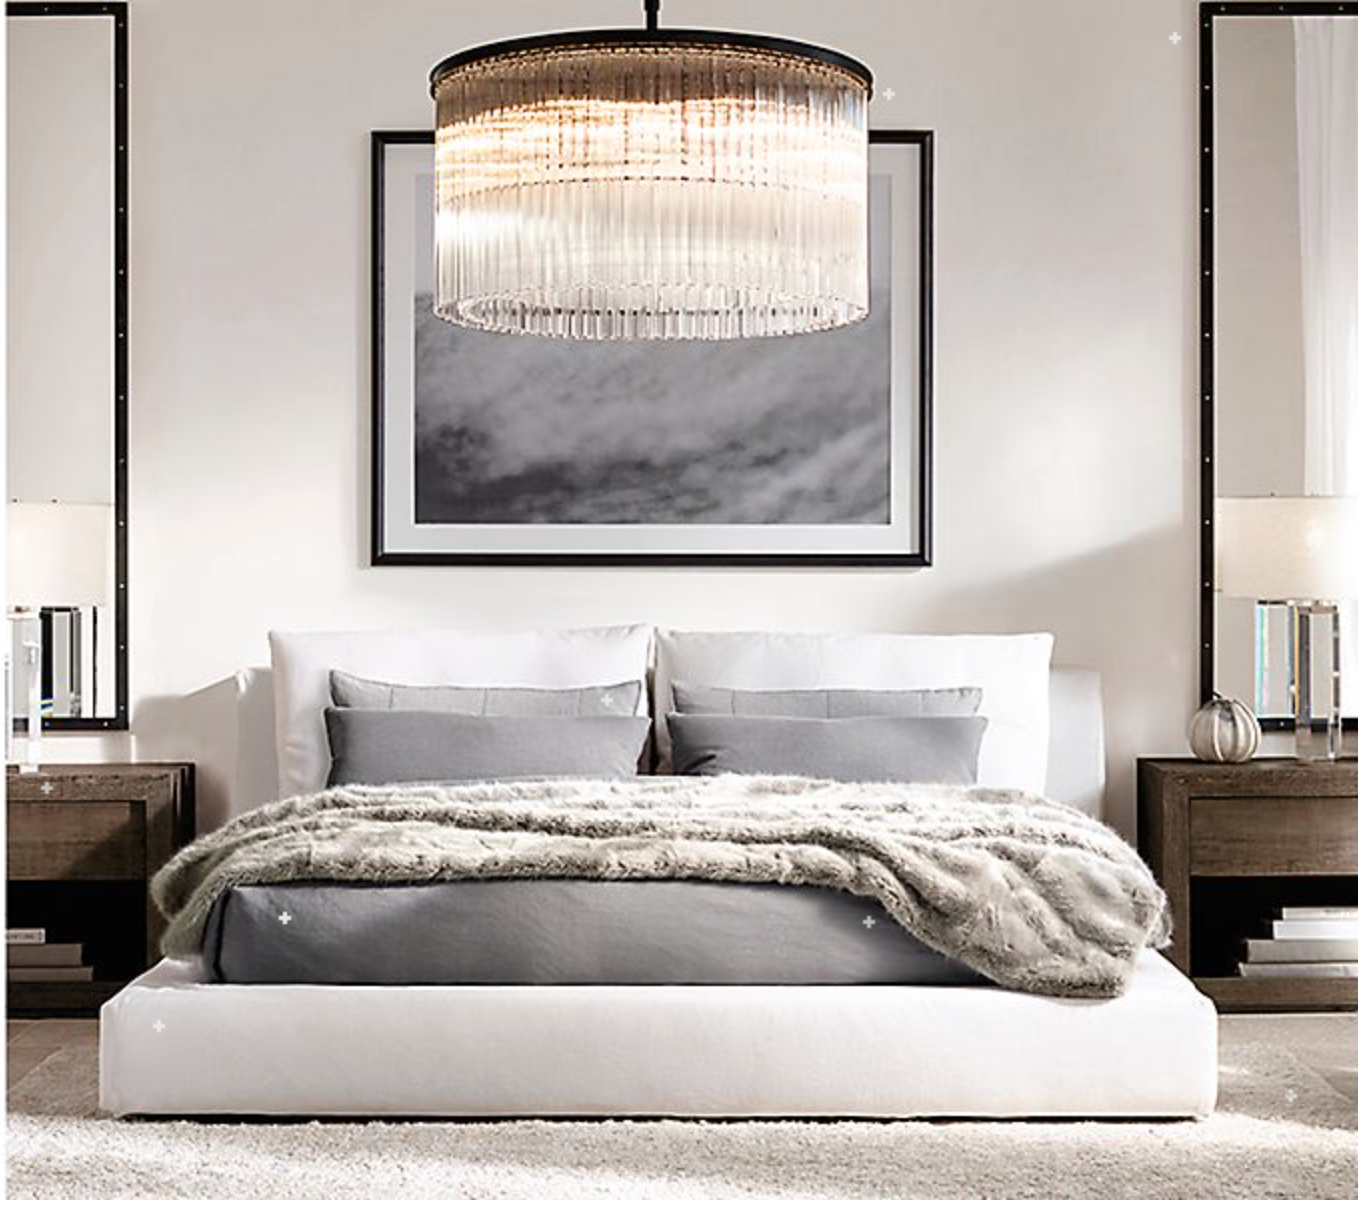 Design An Elegant Bedroom In 5 Easy Steps: Symmetry Setting, Huge Canvas